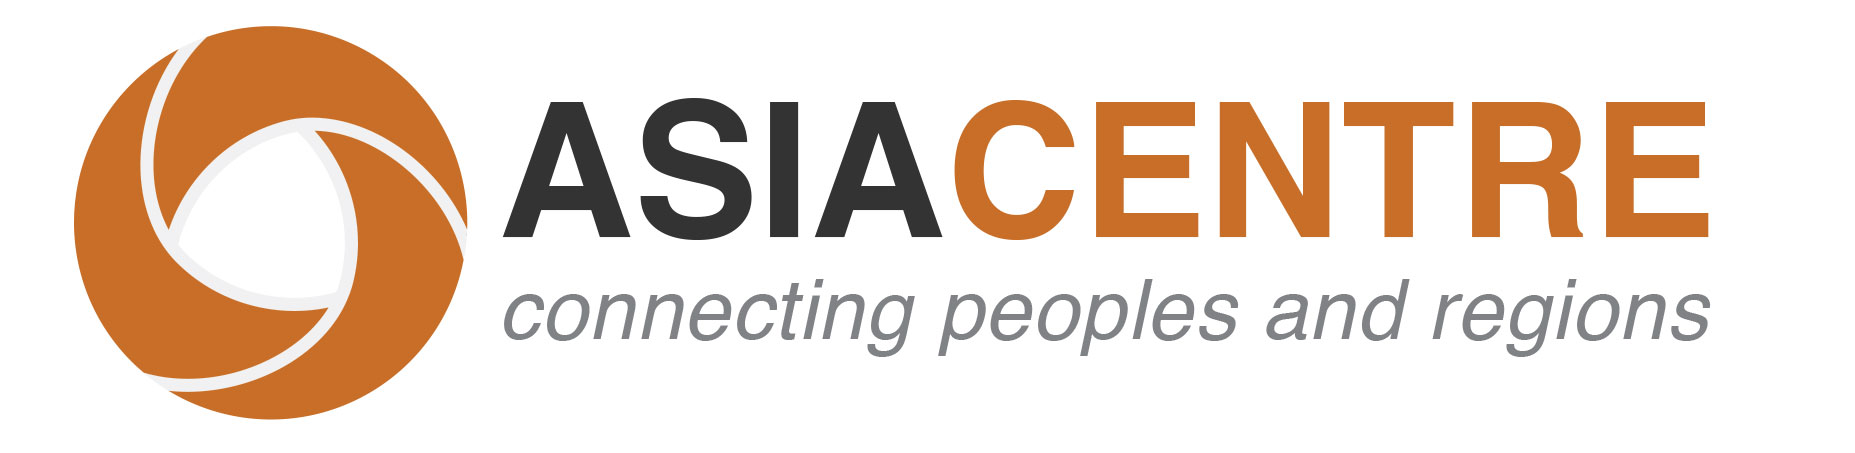 "Asia Centre logo in orange and black, with written underneath ""connecting peoples and regions"""